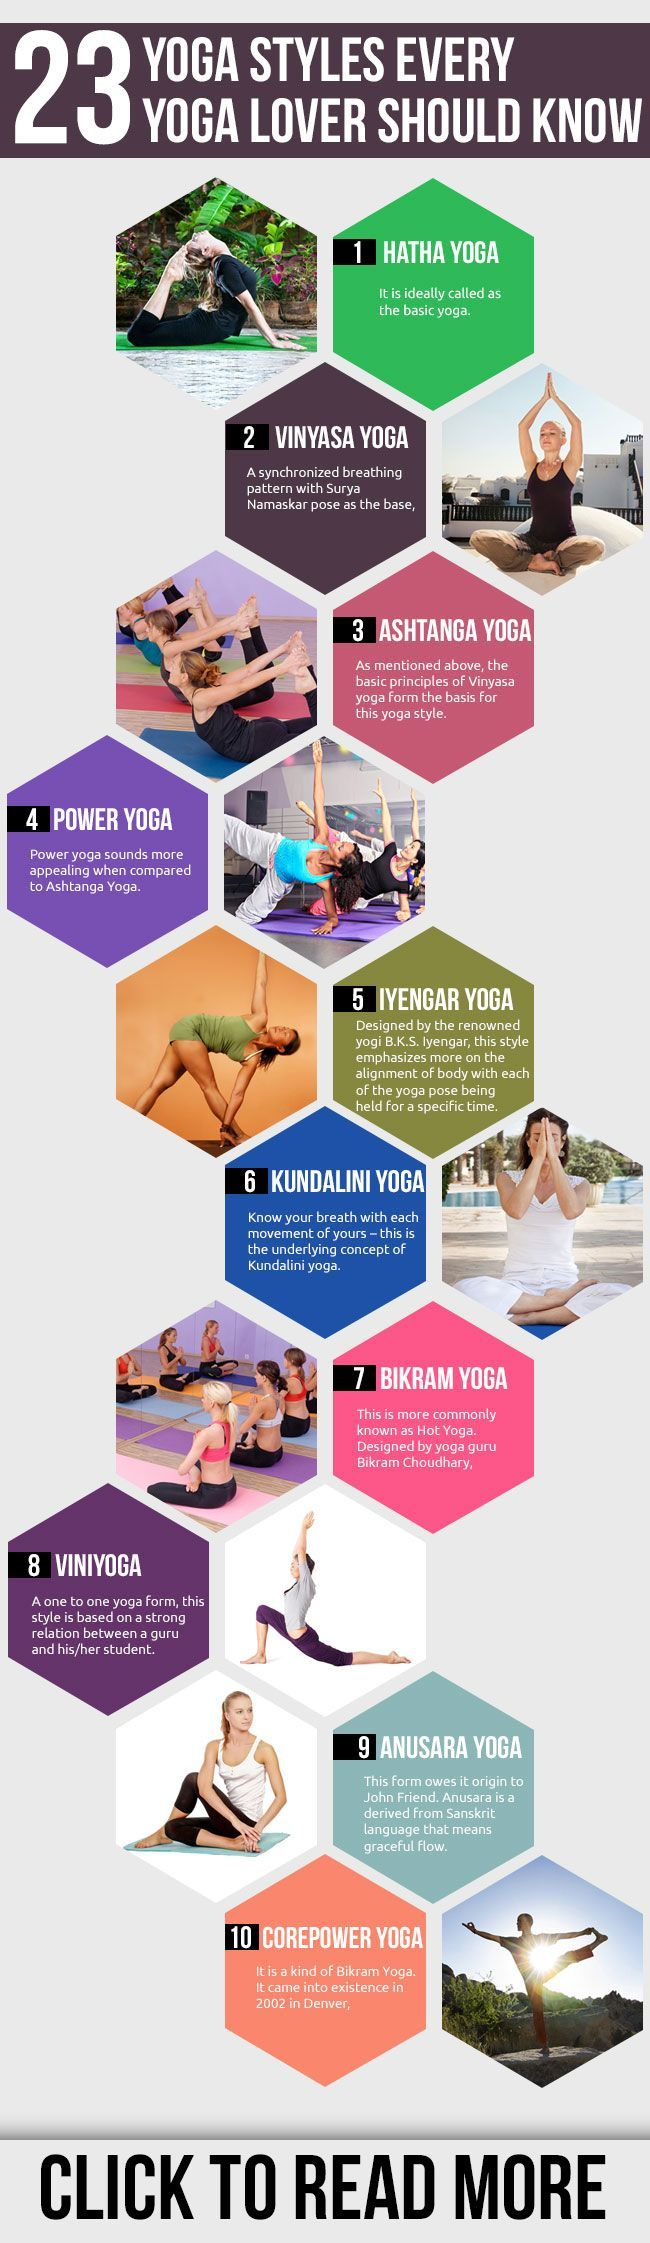 Take a short journey into the world of various yoga styles and the benefits each one renders right here!